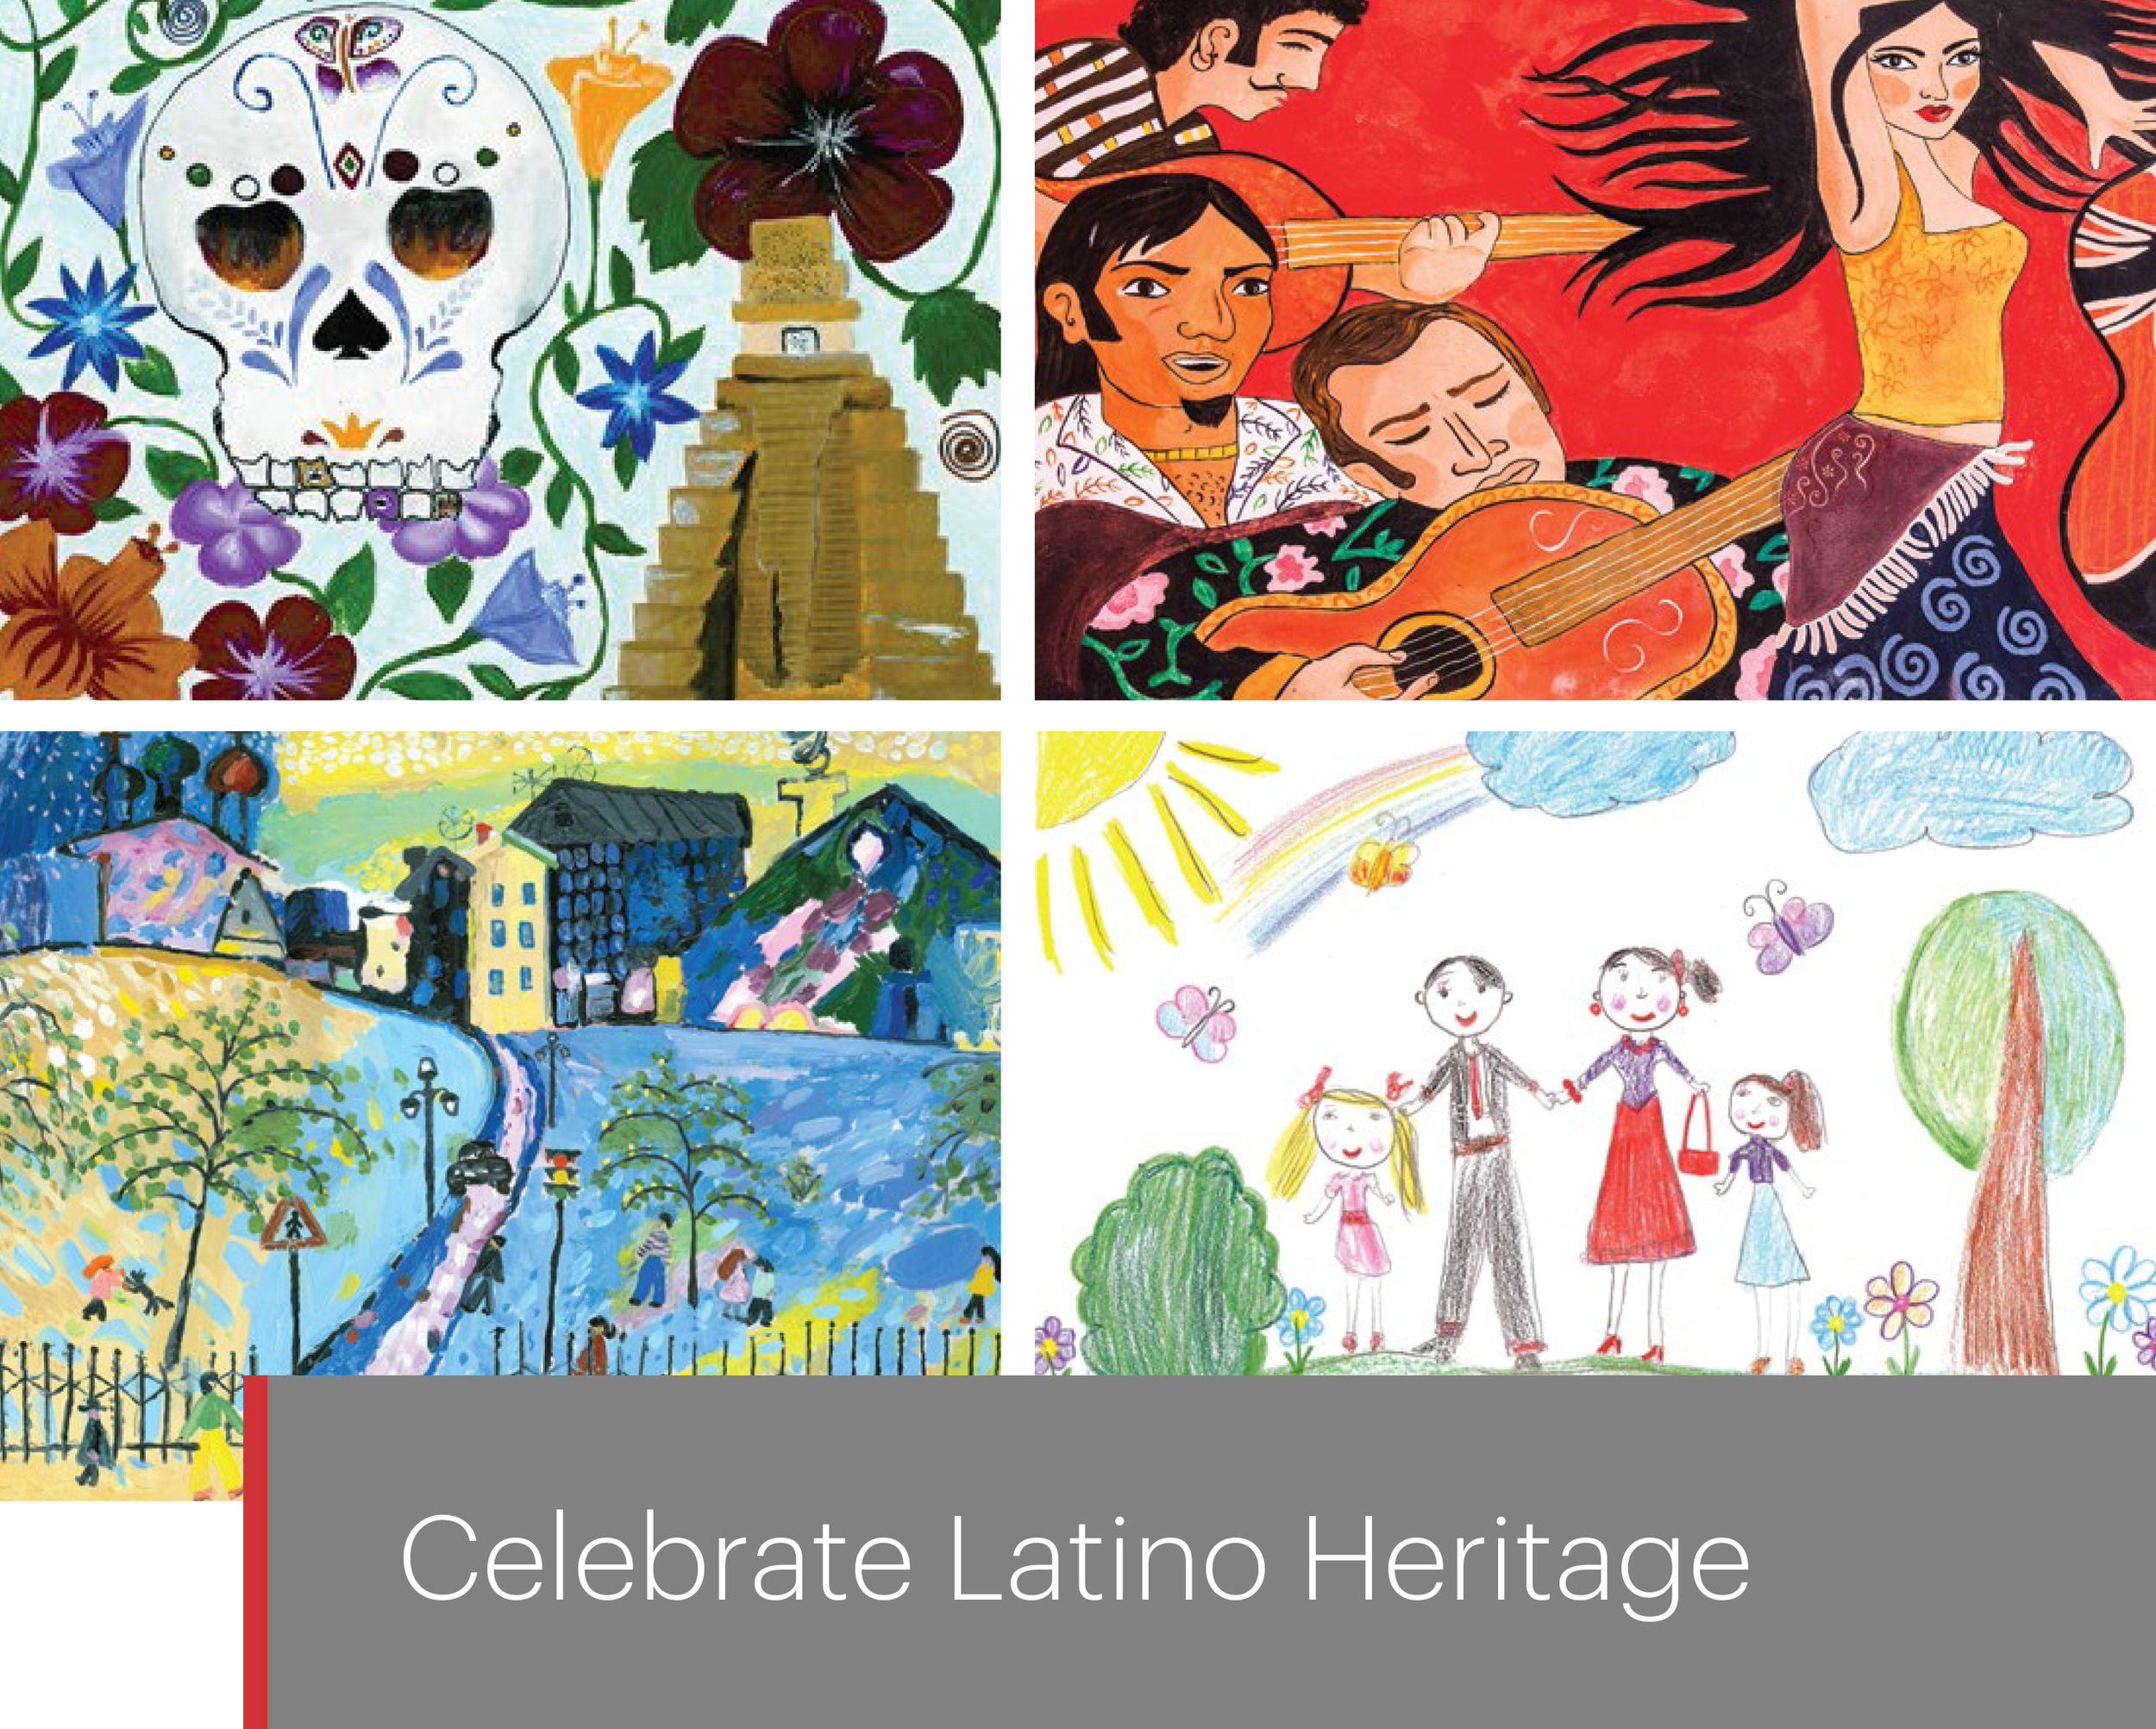 UB_Latino Heritage Month Contest_Standee Banner_Final_0911 (1).jpg